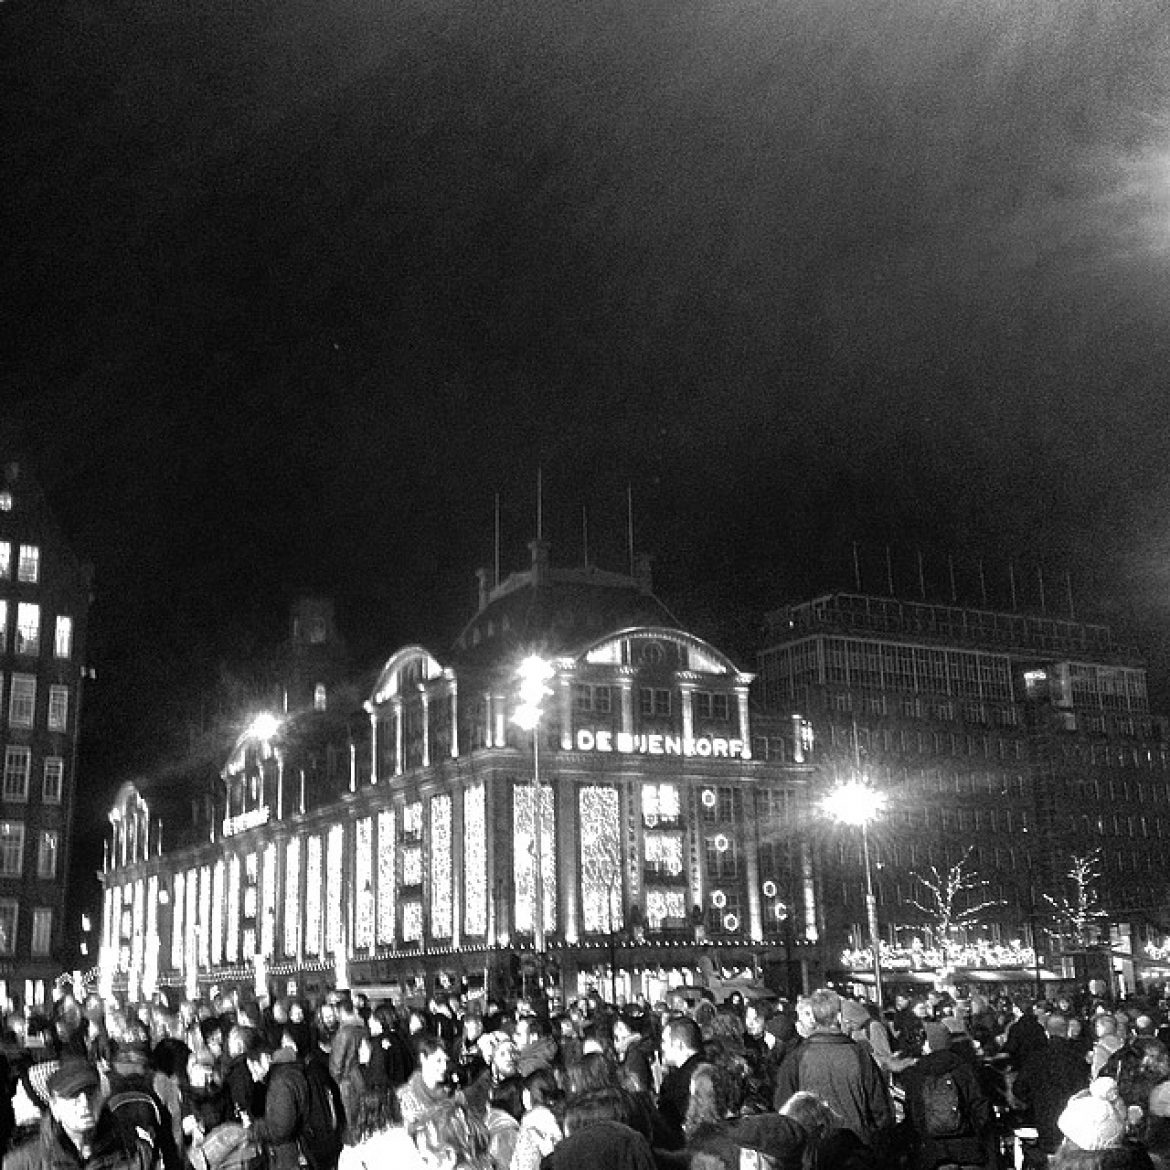 #demonstration #charliehebdo #amsterdam #damsquare #iphonephotography